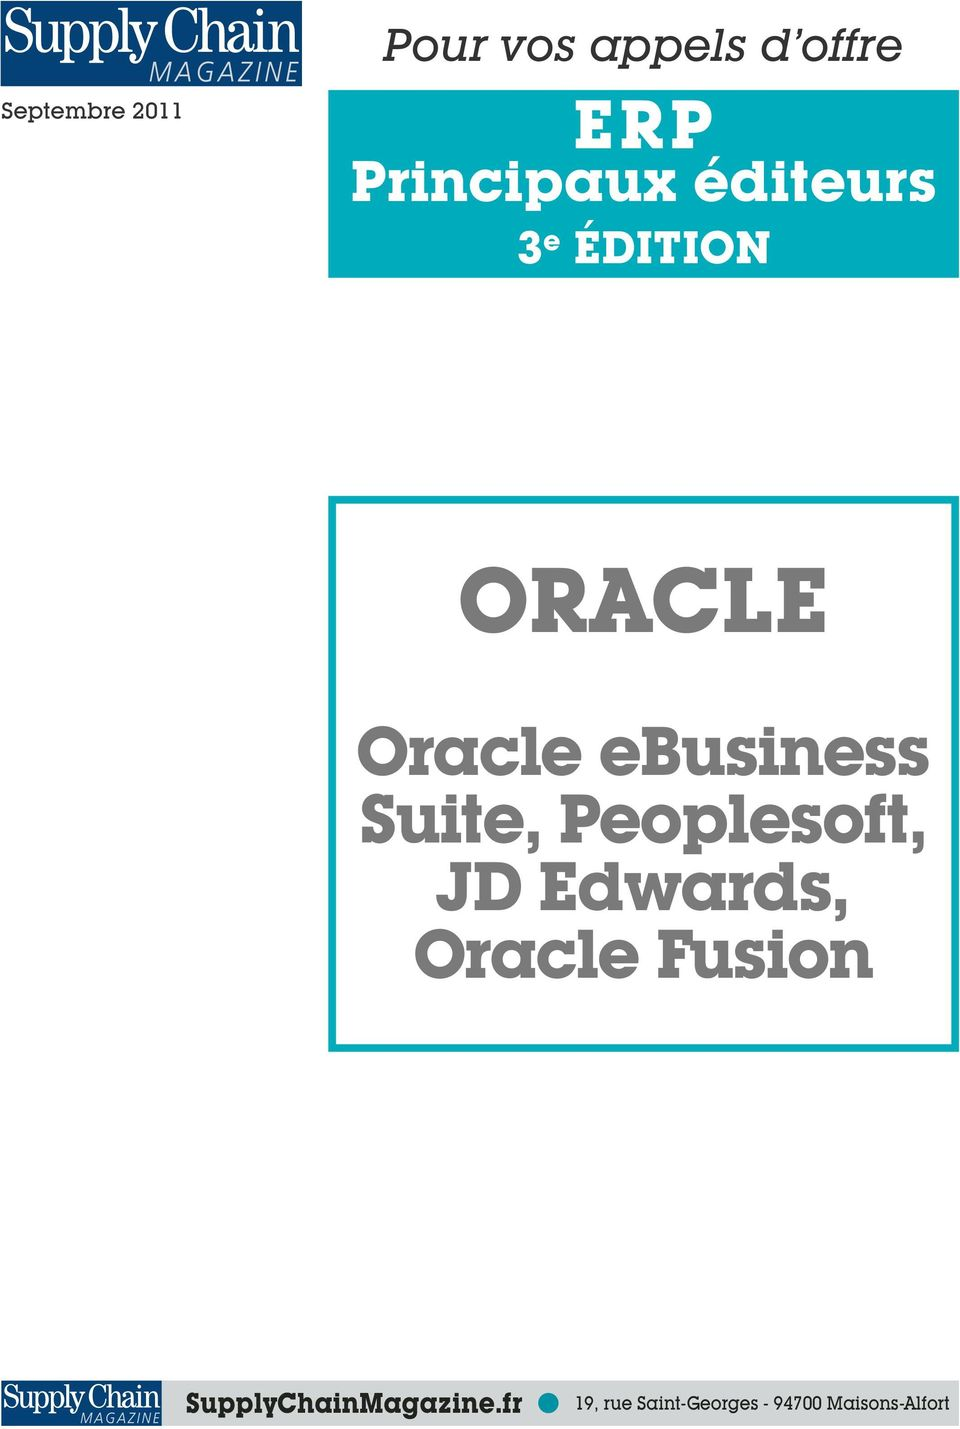 ebusiness Suite, Peoplesoft, JD Edwards, Oracle